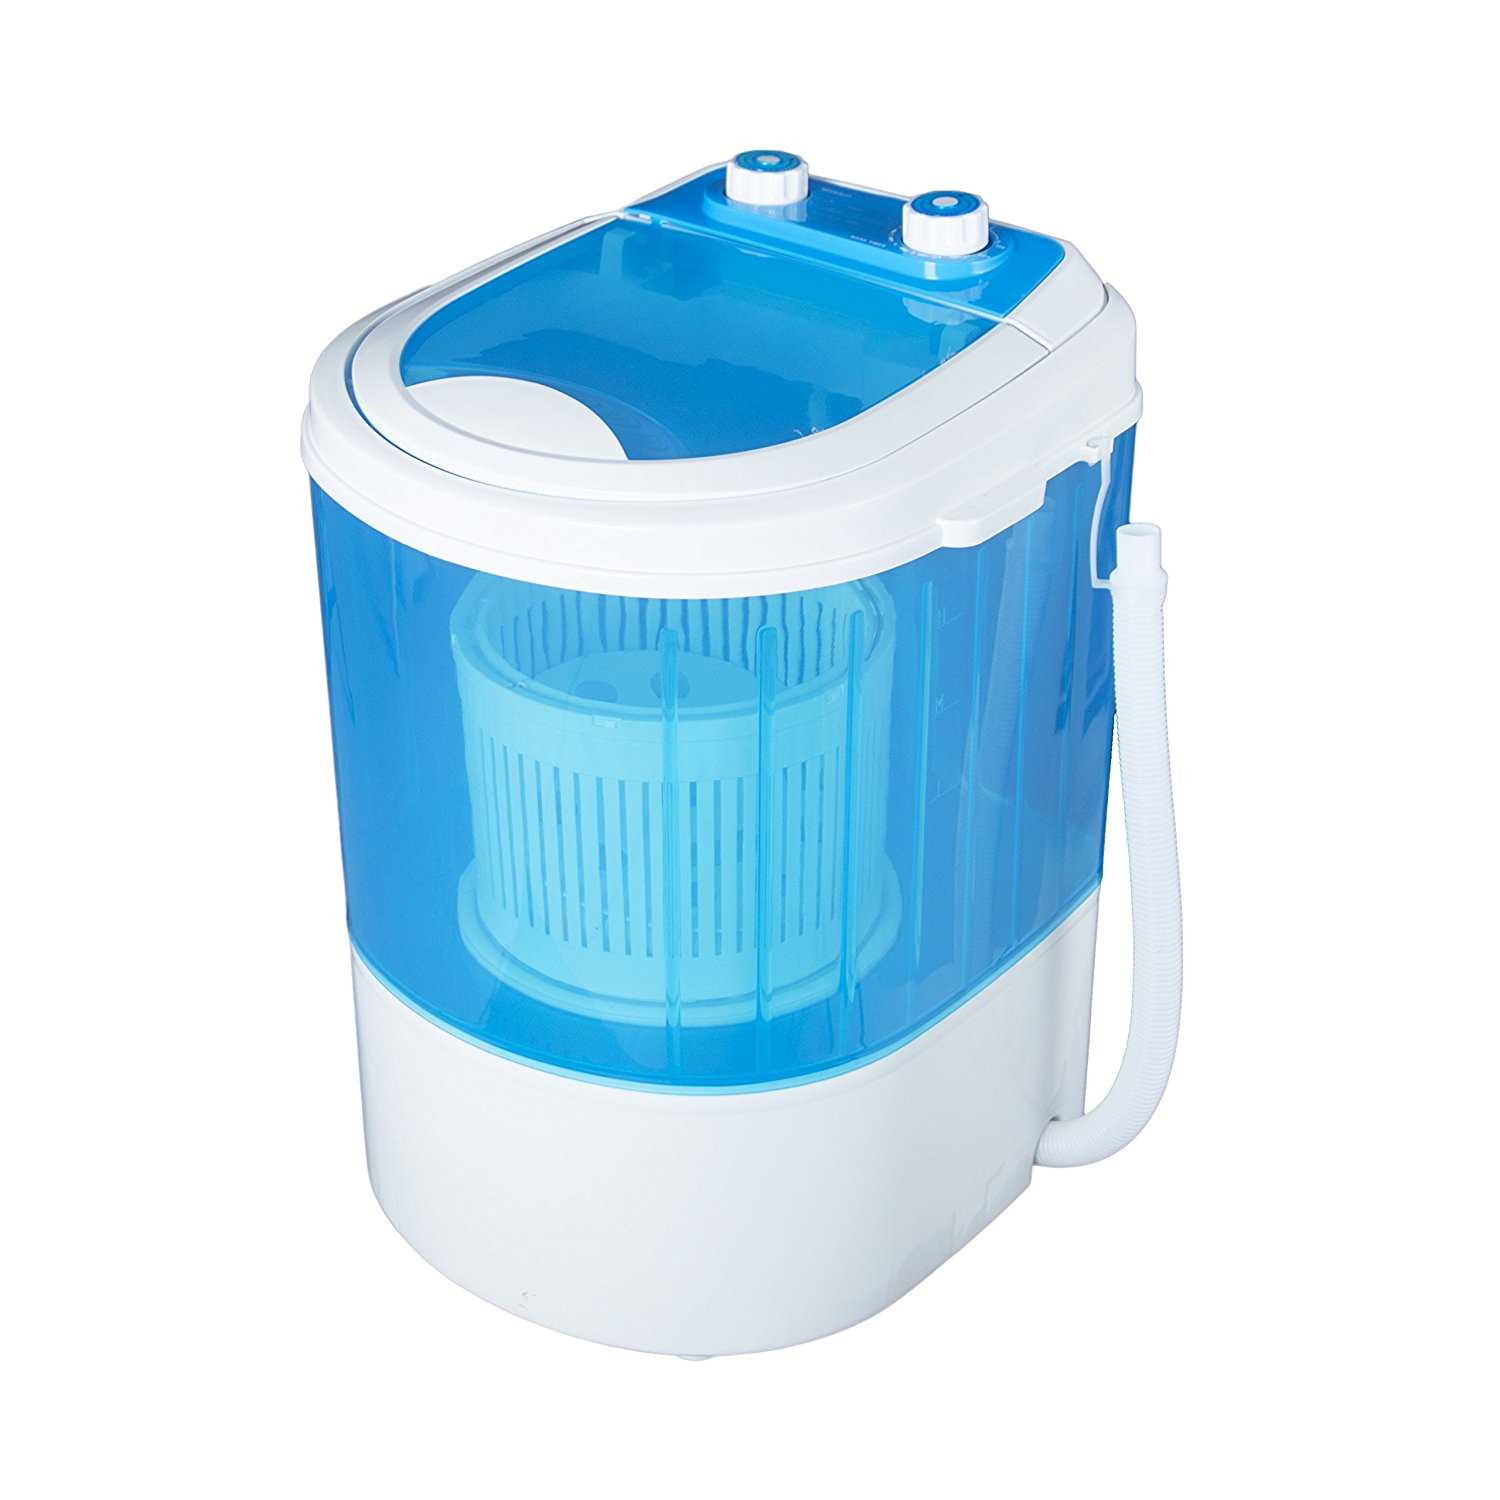 Mini Washing Machines Vetronix Vmwm2003 3 Kg Portable Mini Washing Machine Price In